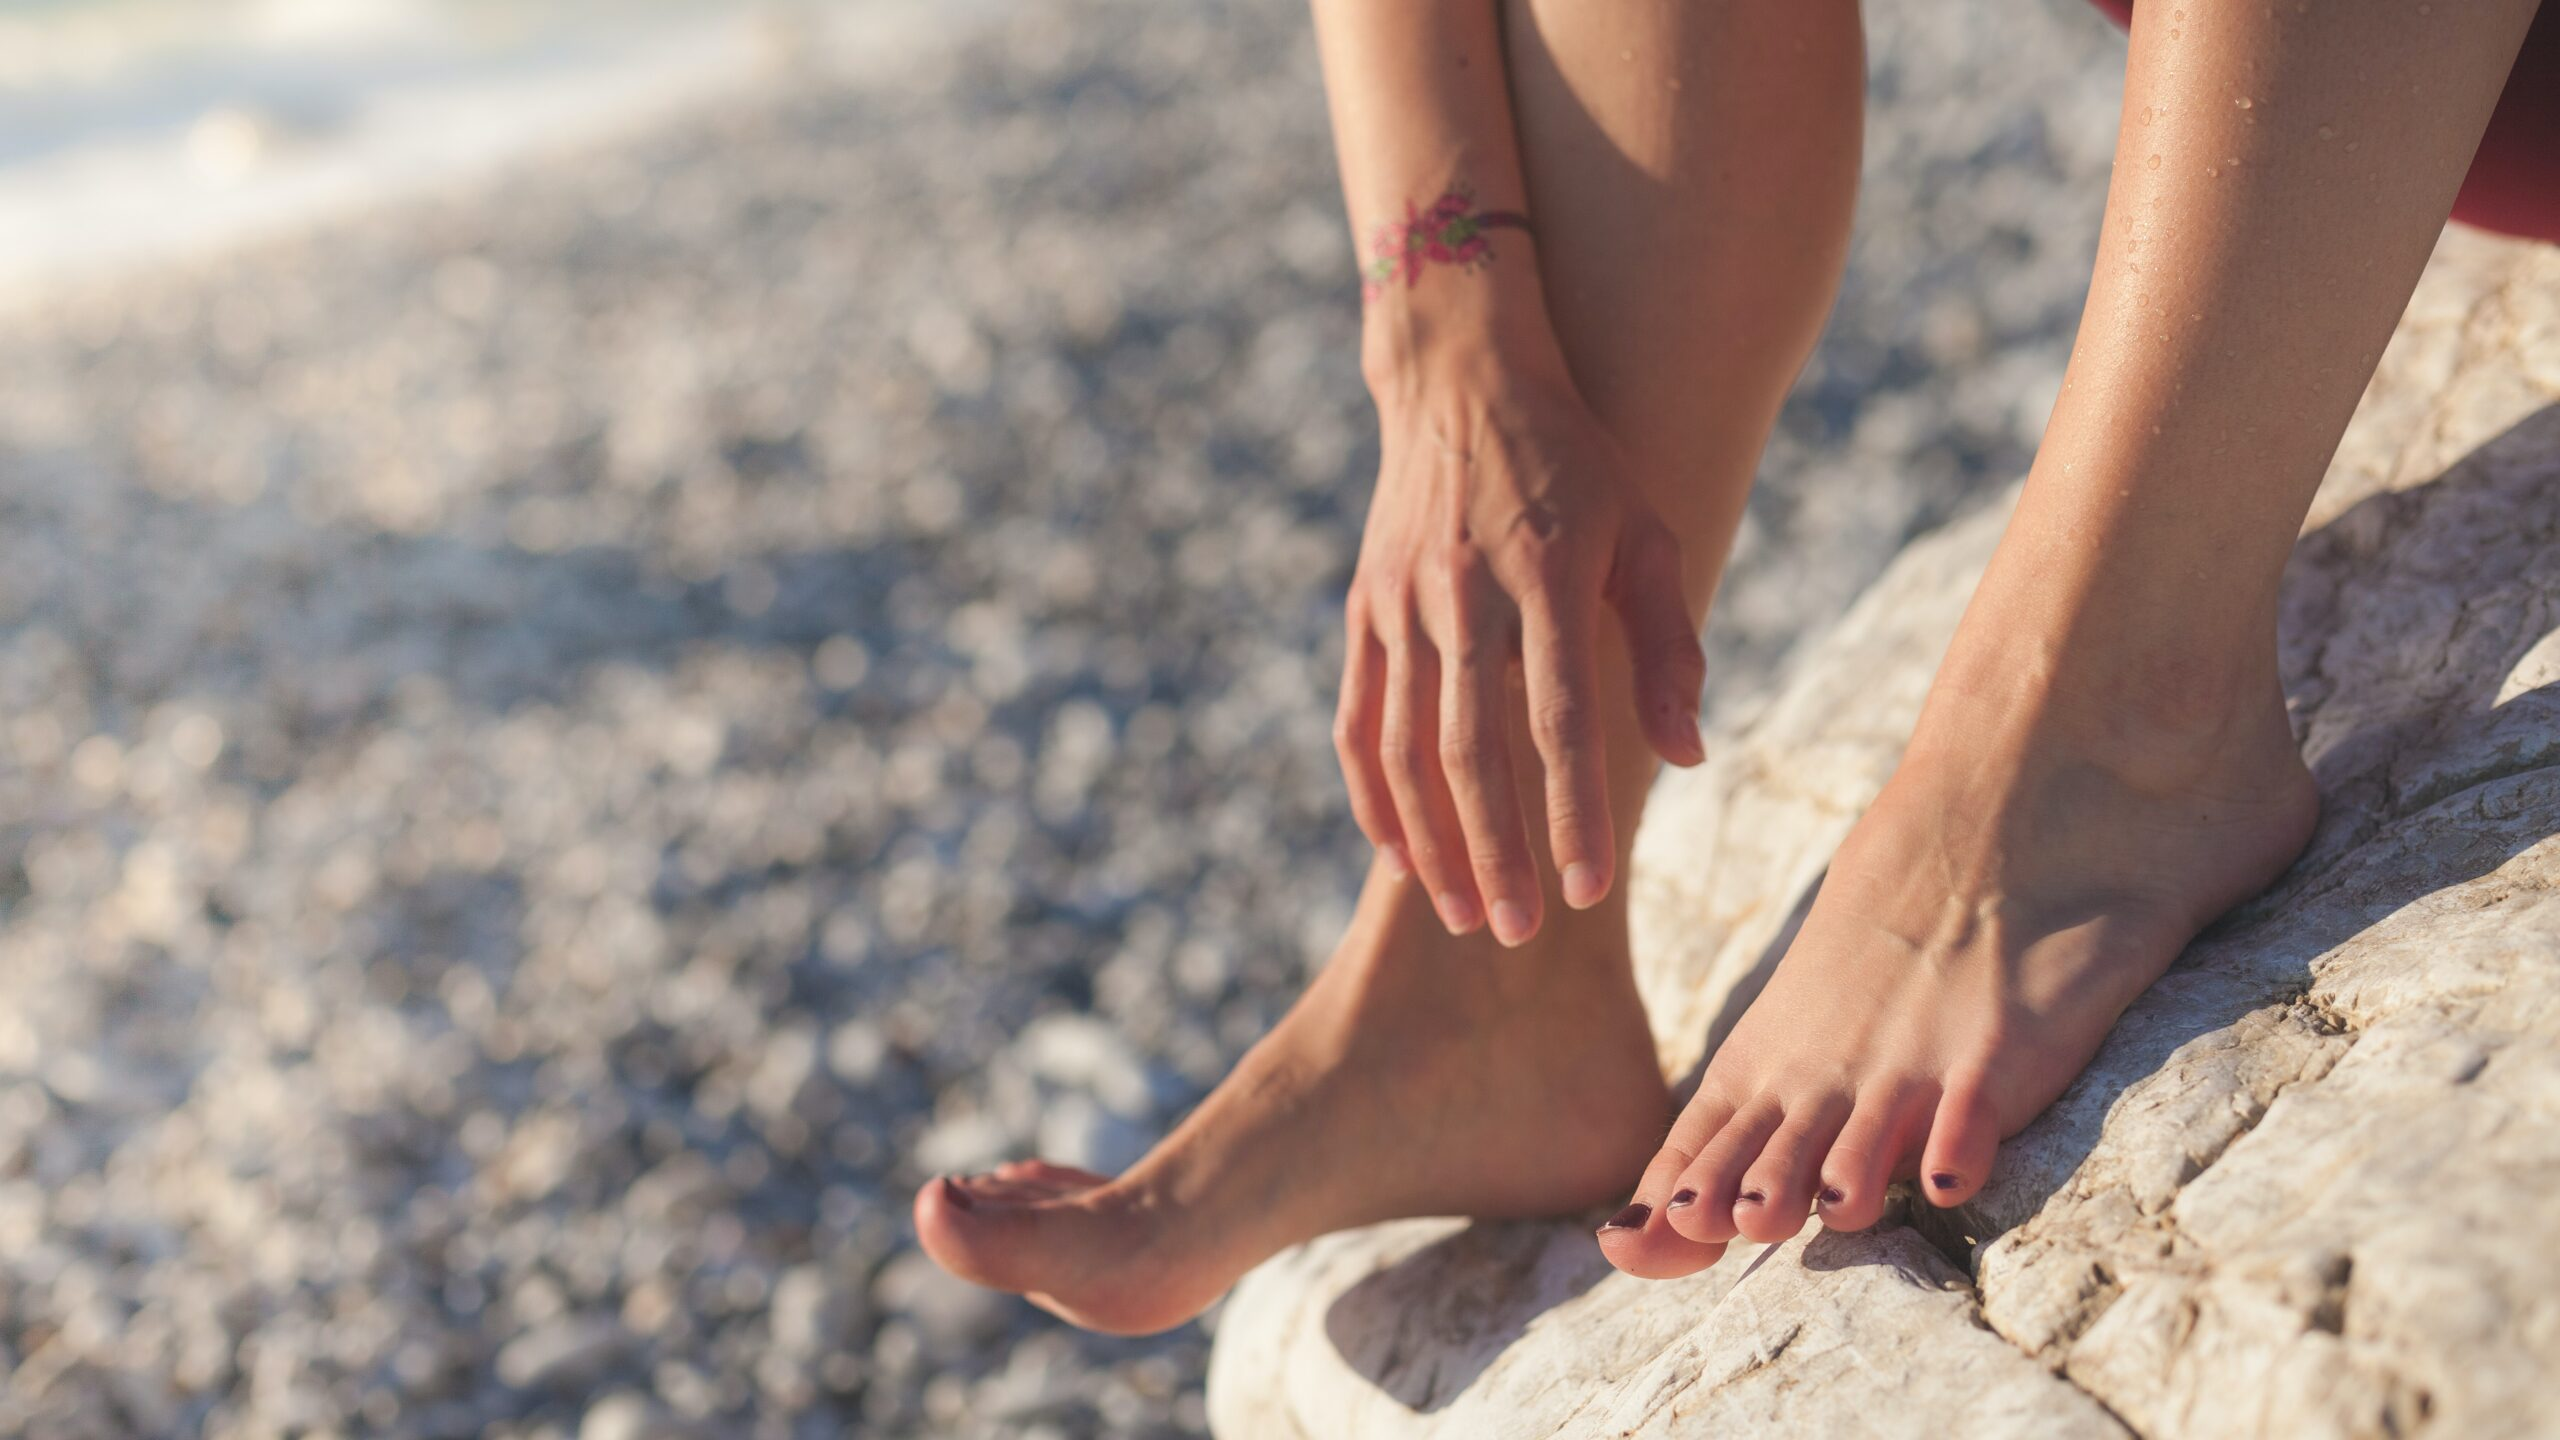 So you were told you have Plantar Fasciitis… Now what?